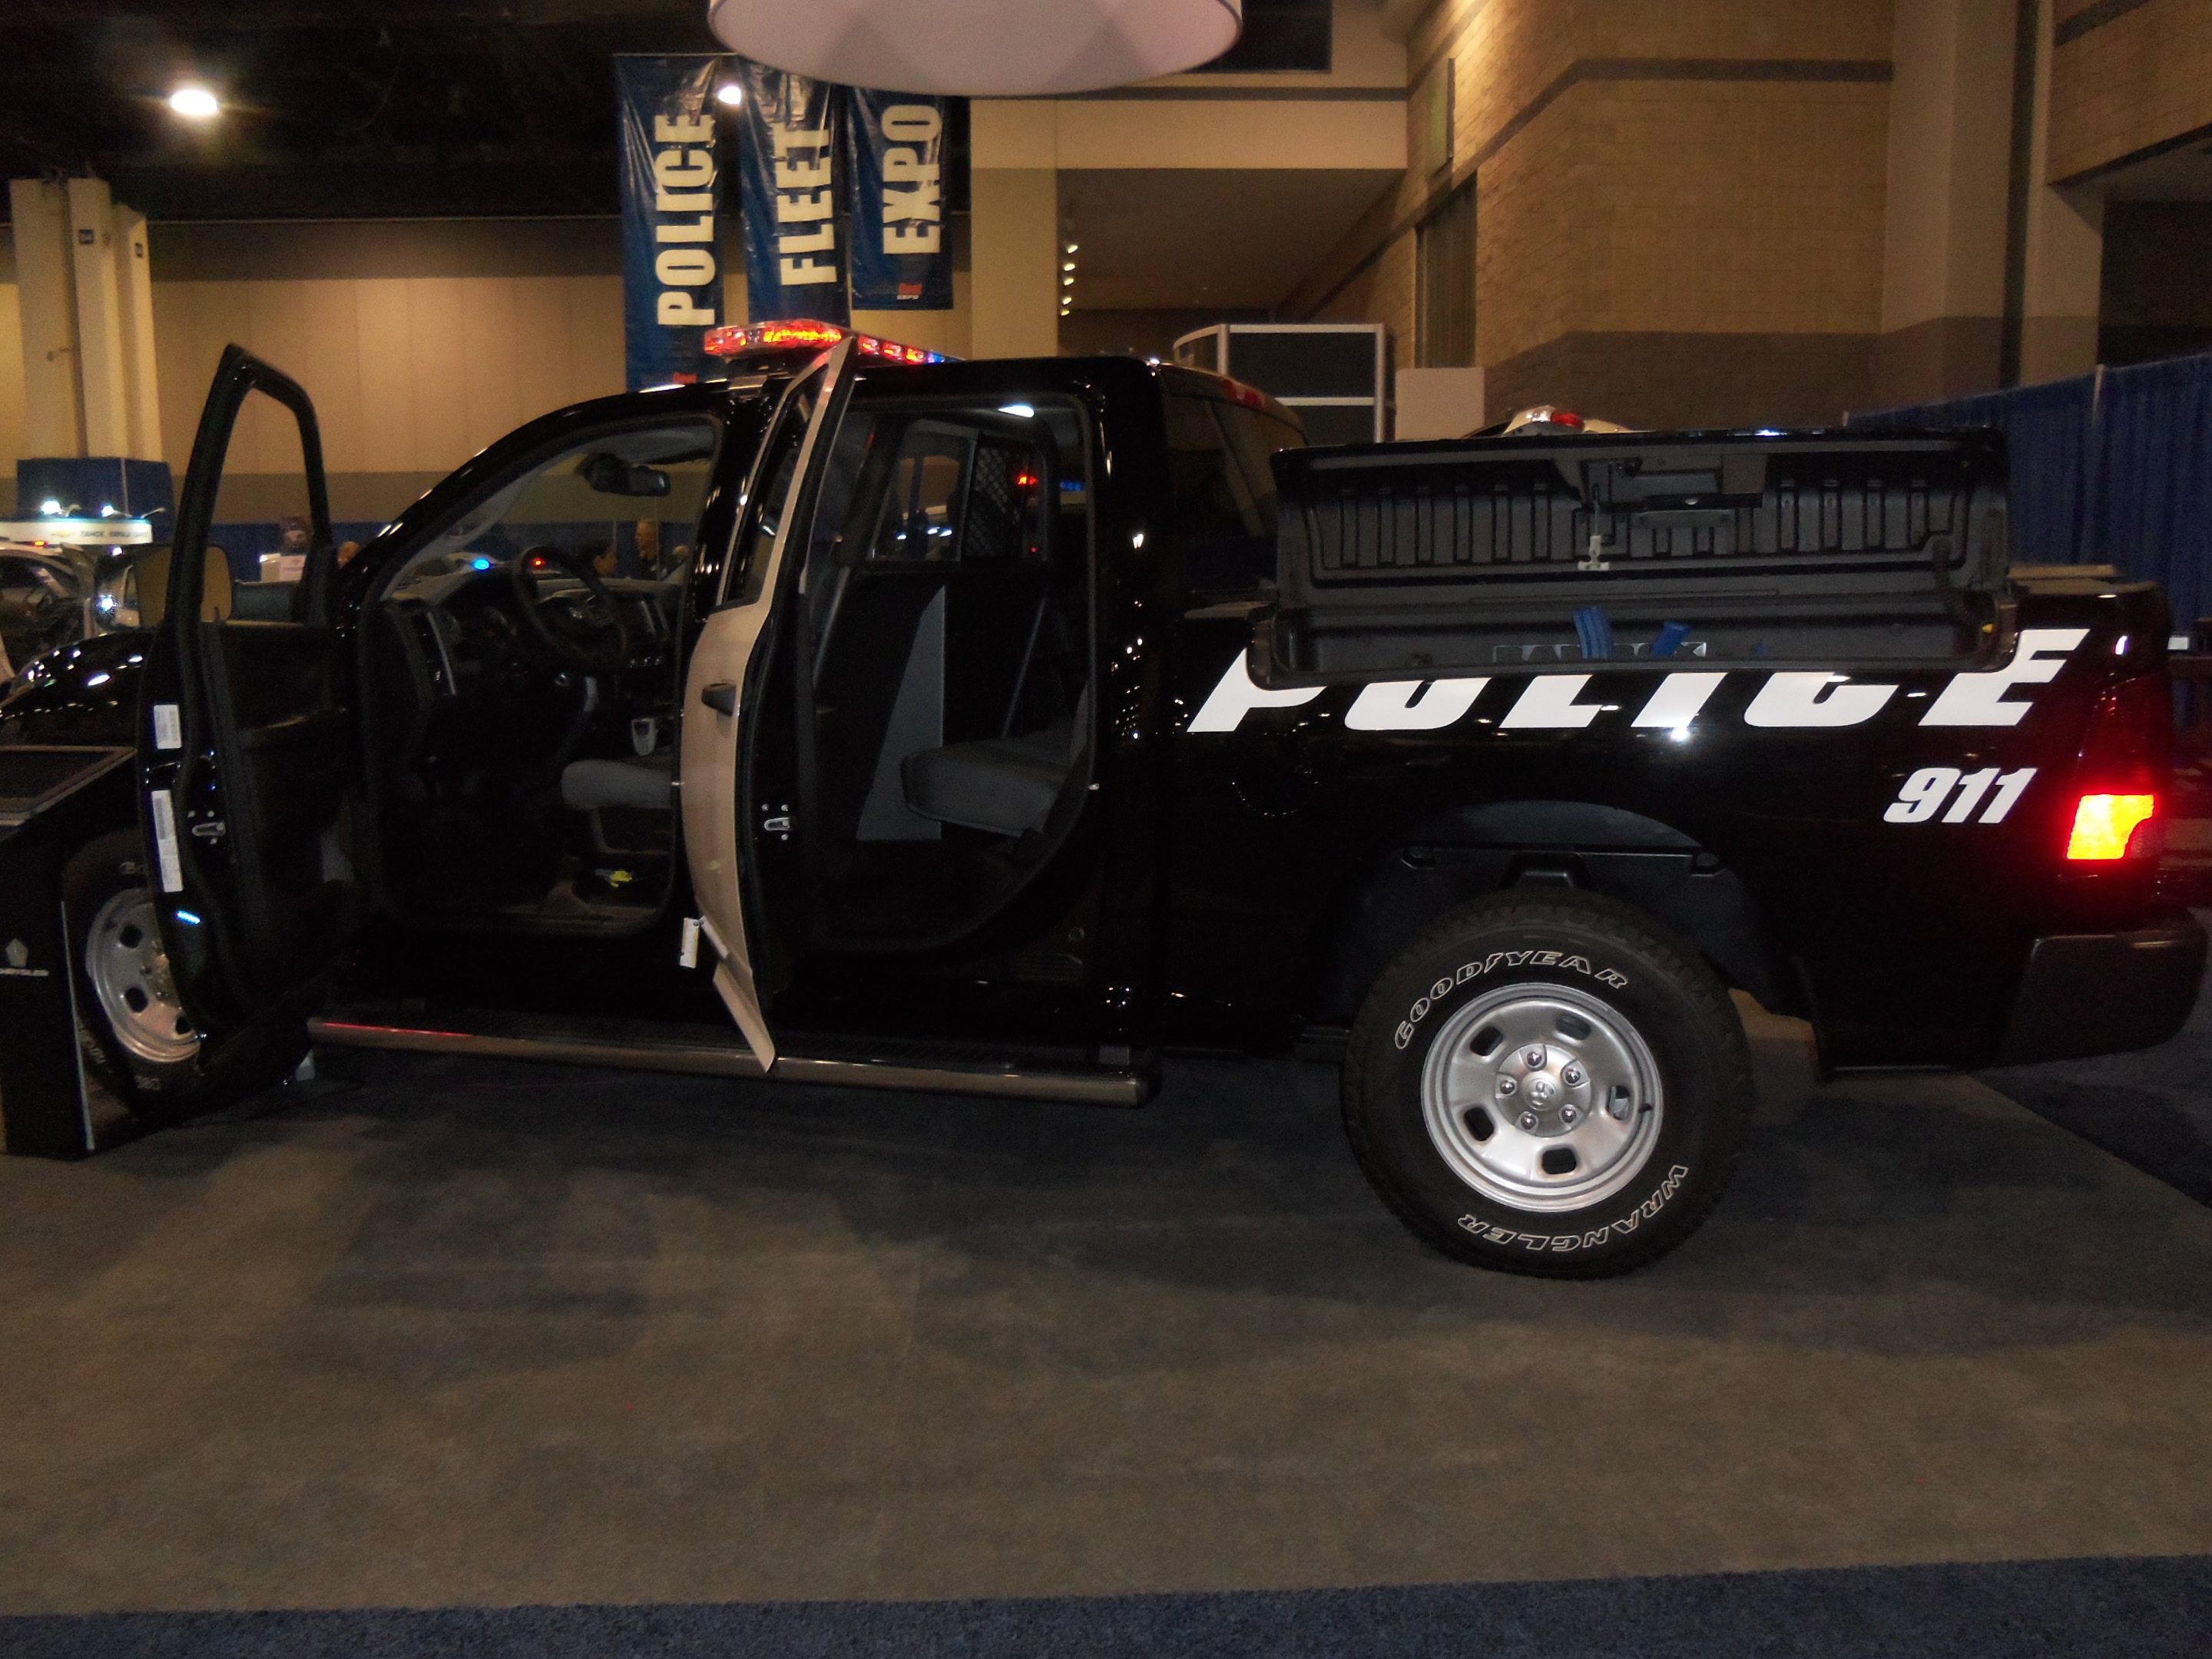 Dodge ram 1500 special service truck at the 2013 police fleet expo in charlotte